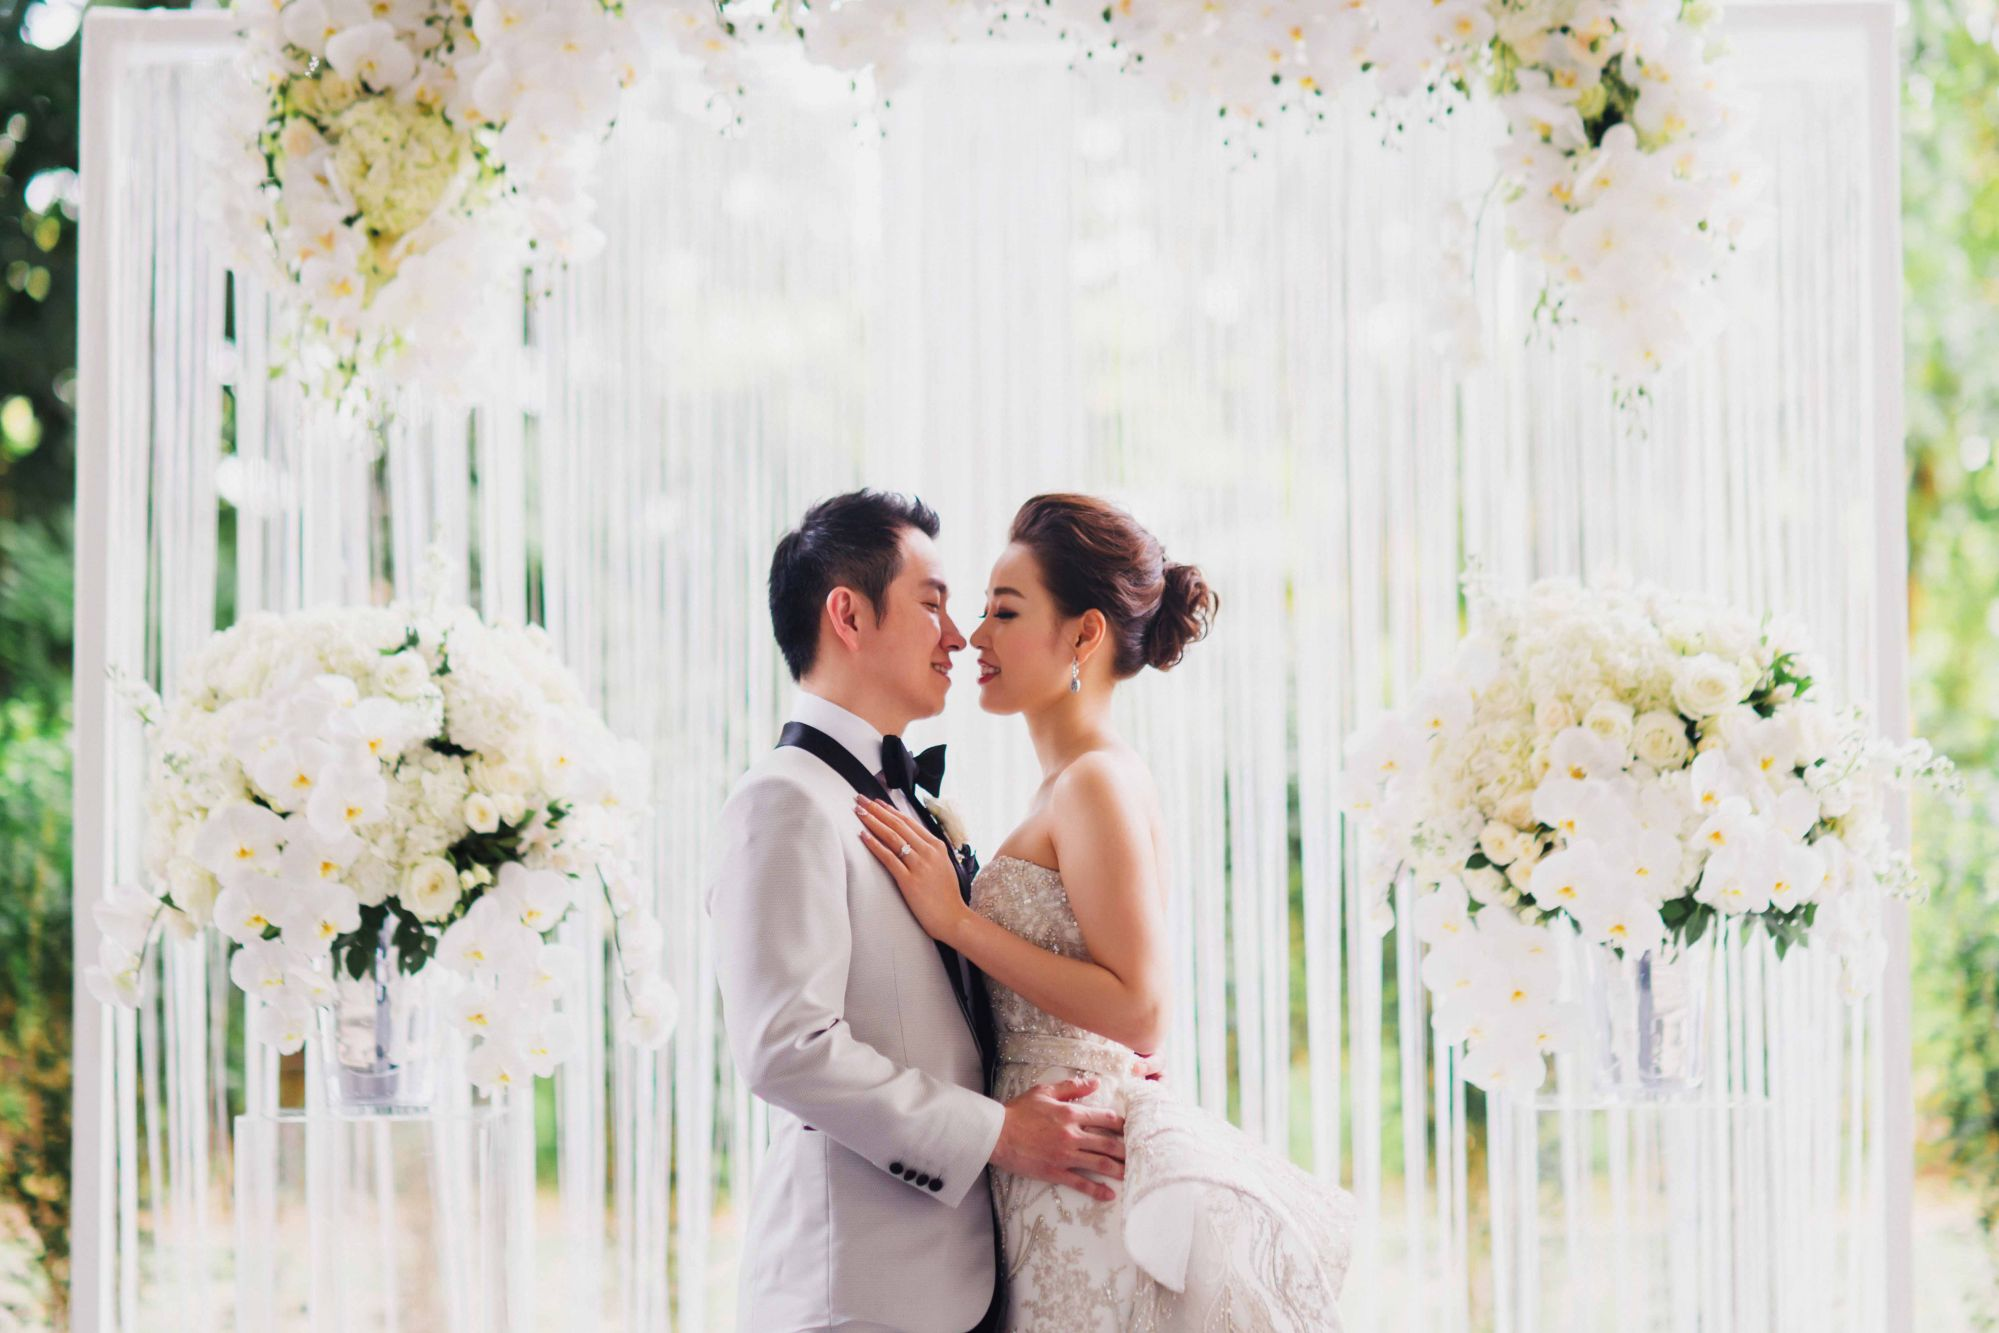 Love At First Blush: Lily Mai & Keith Loo